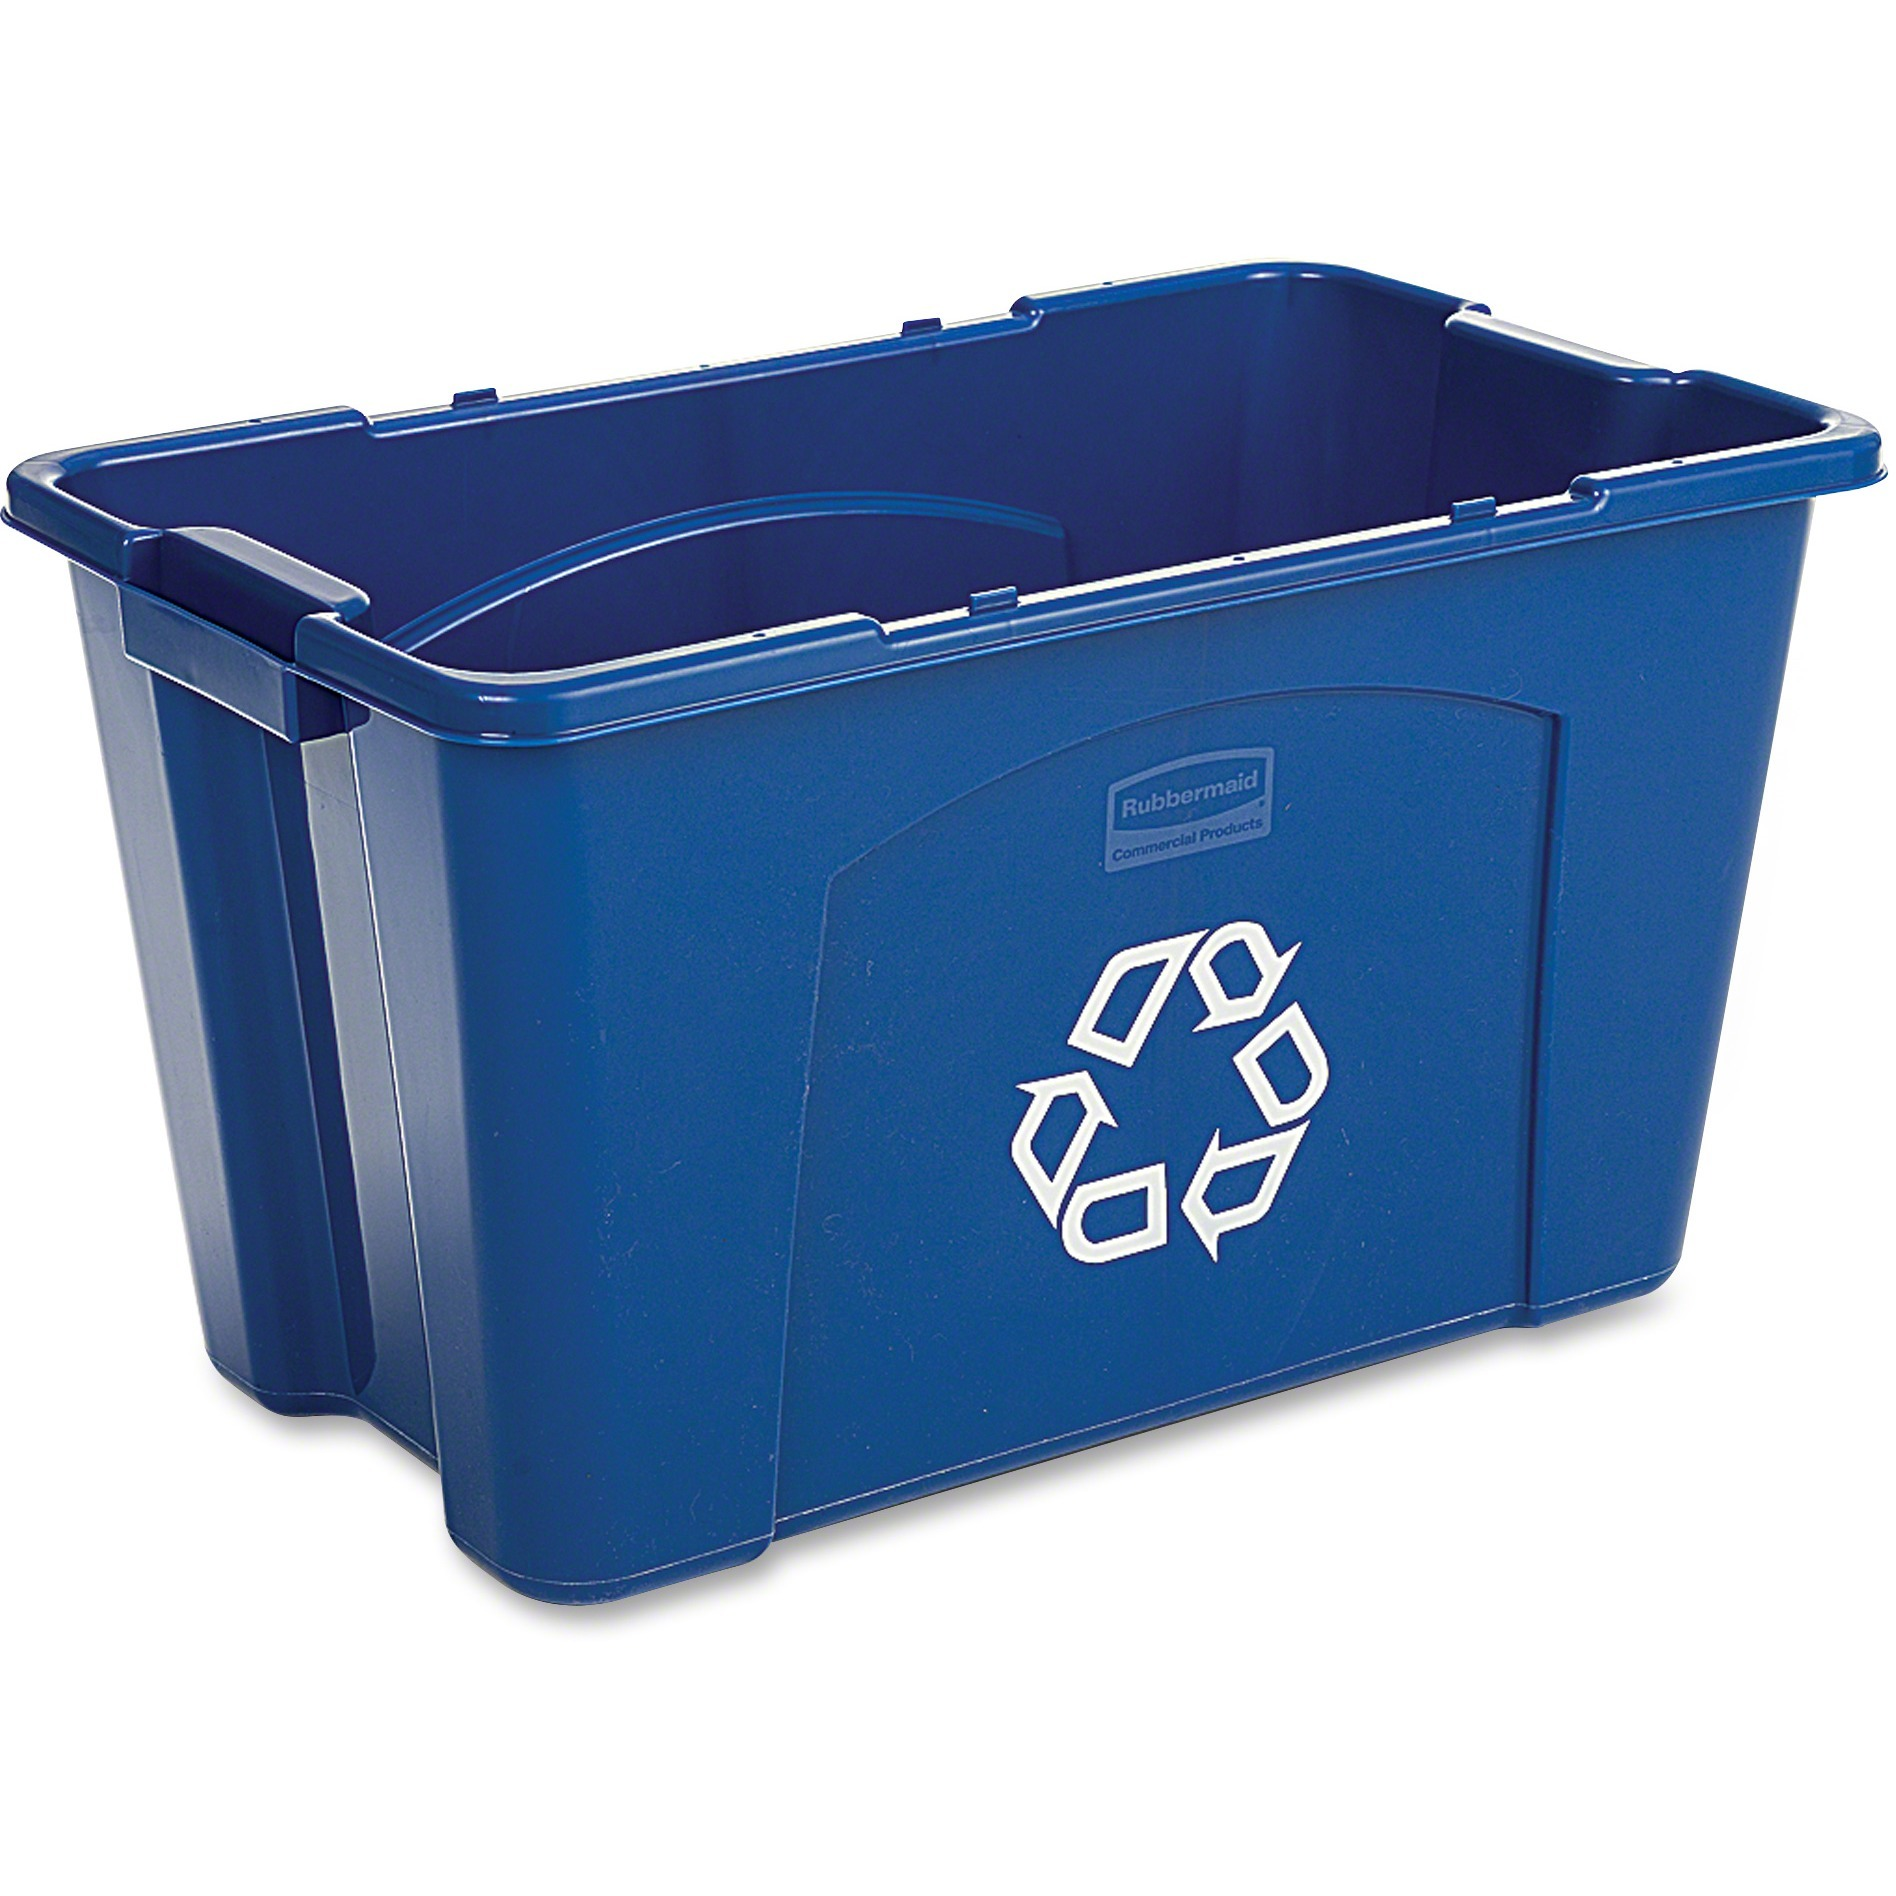 Rubbermaid Commercial, RCP571873BE, 18-gallon Recycling Box, 1, Blue